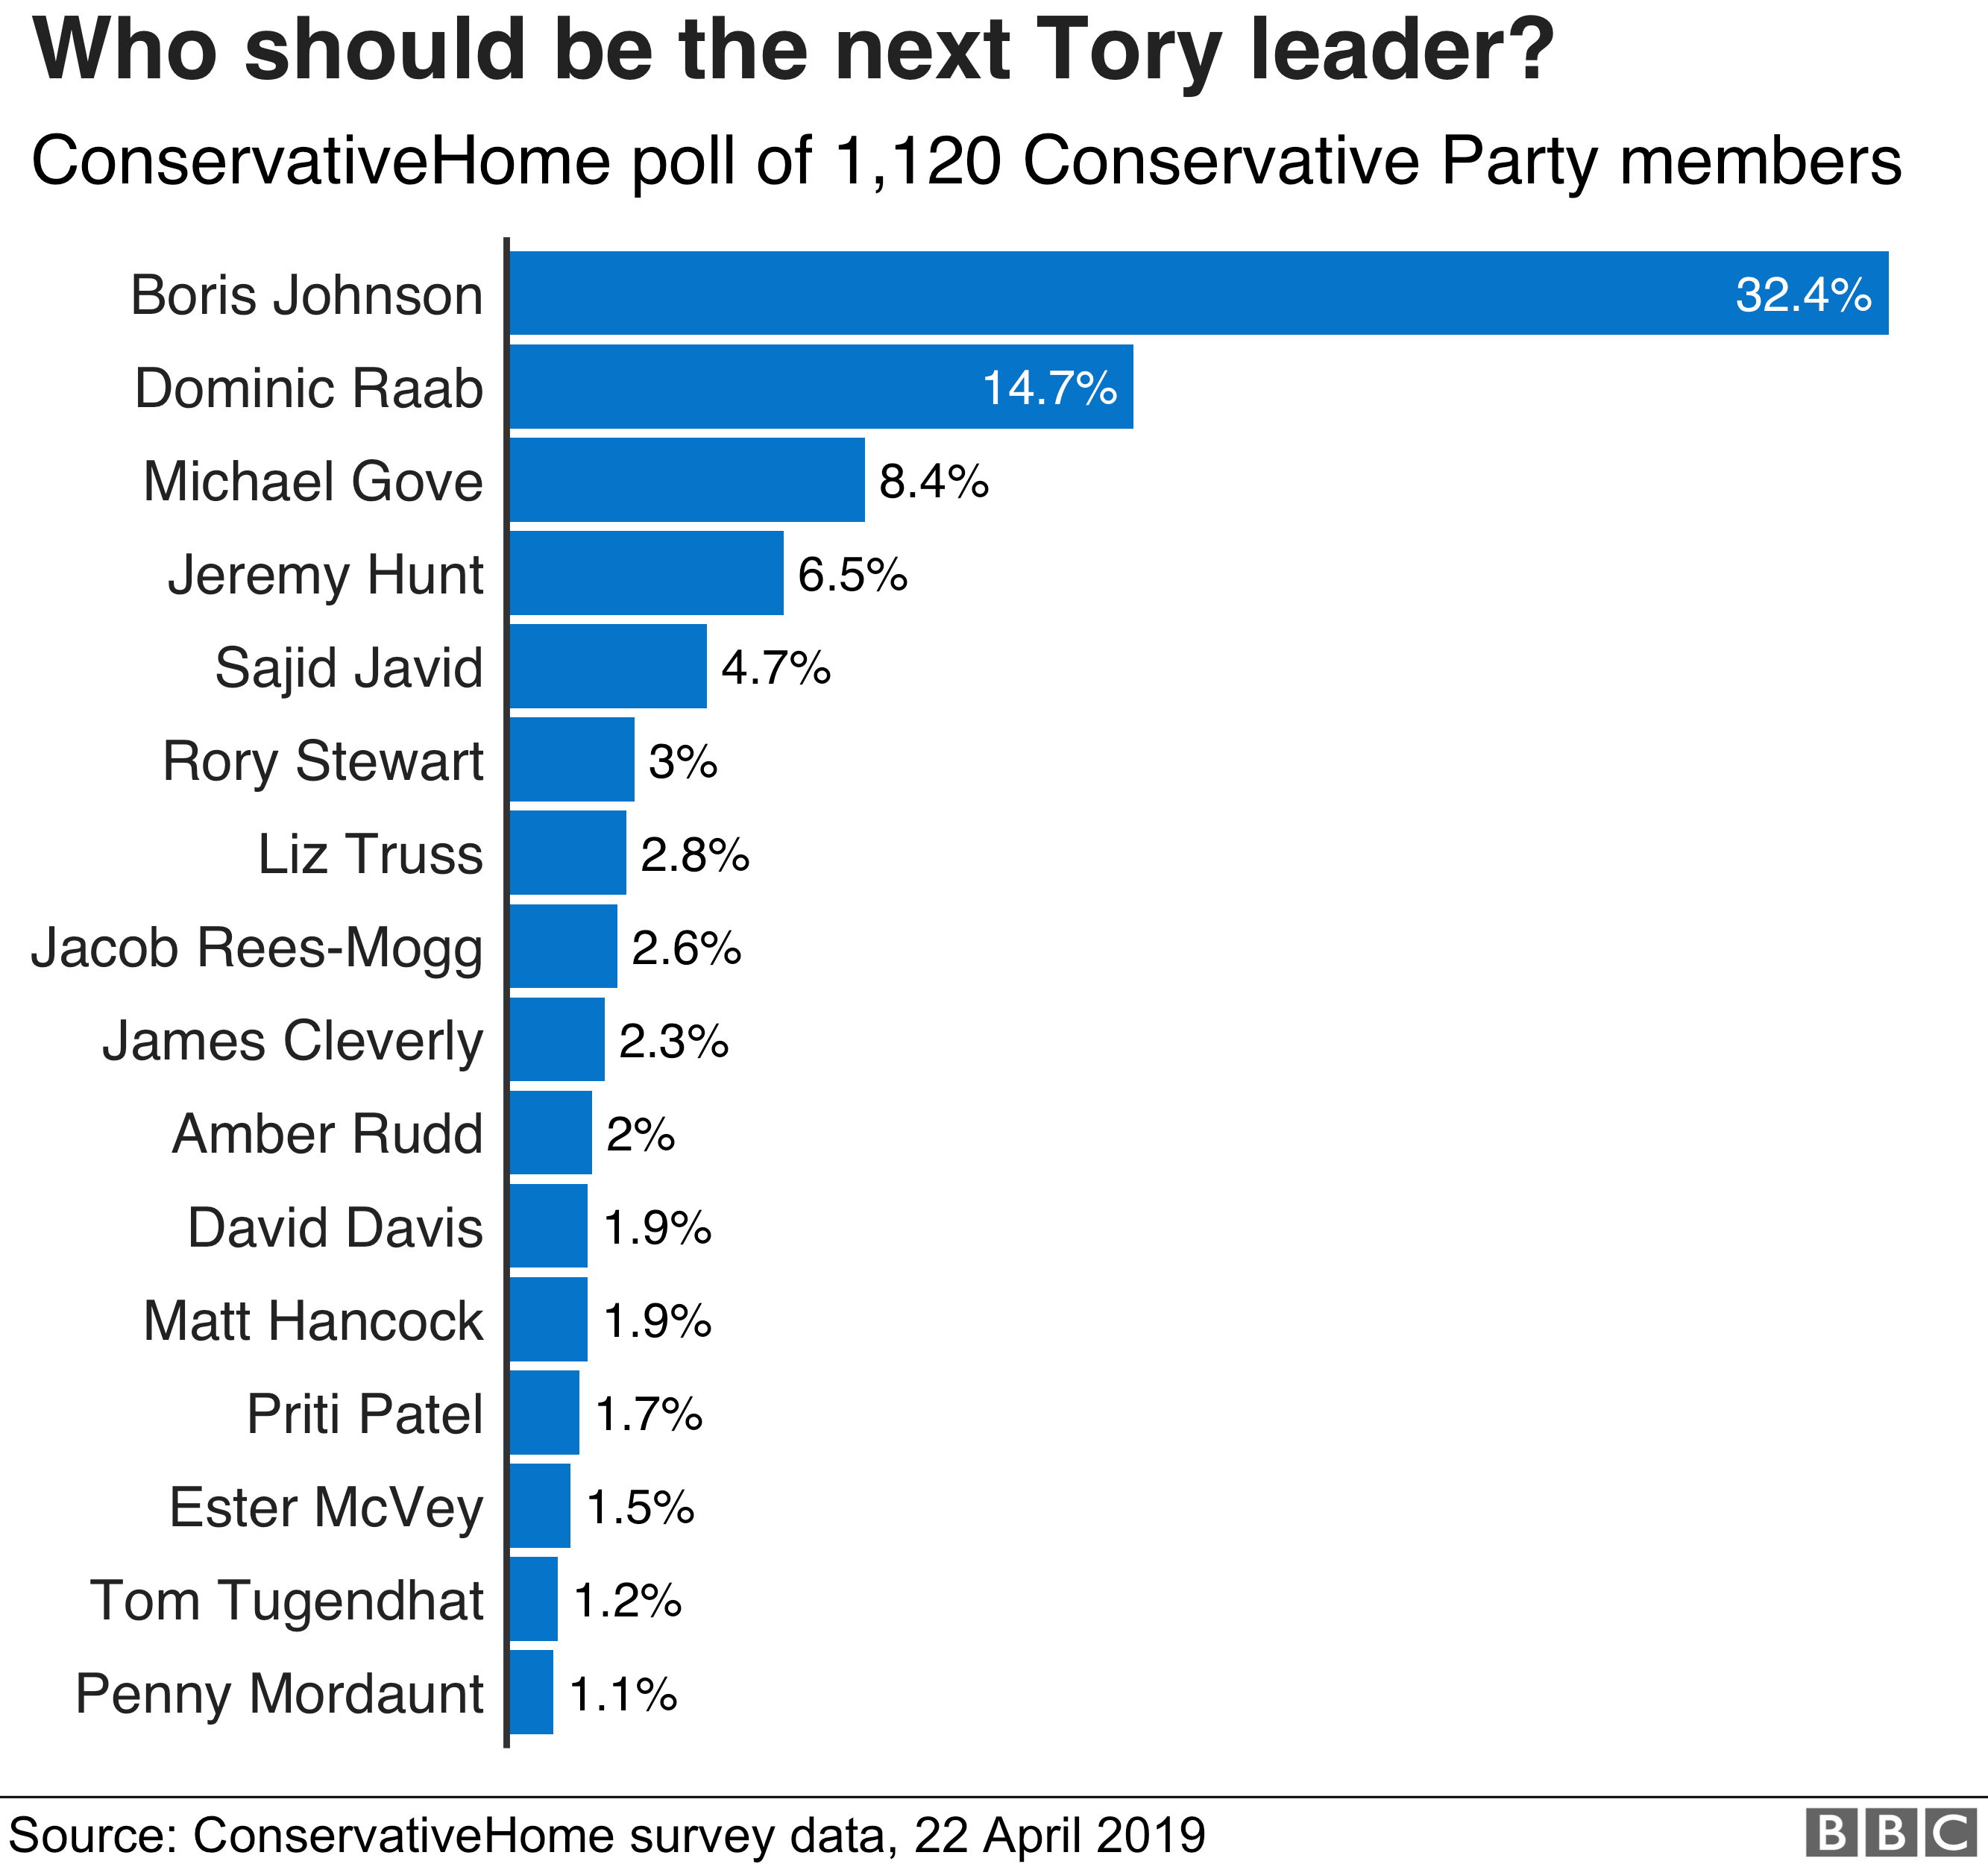 Chart showing ConservativeHome polling on who should be the next Tory leader